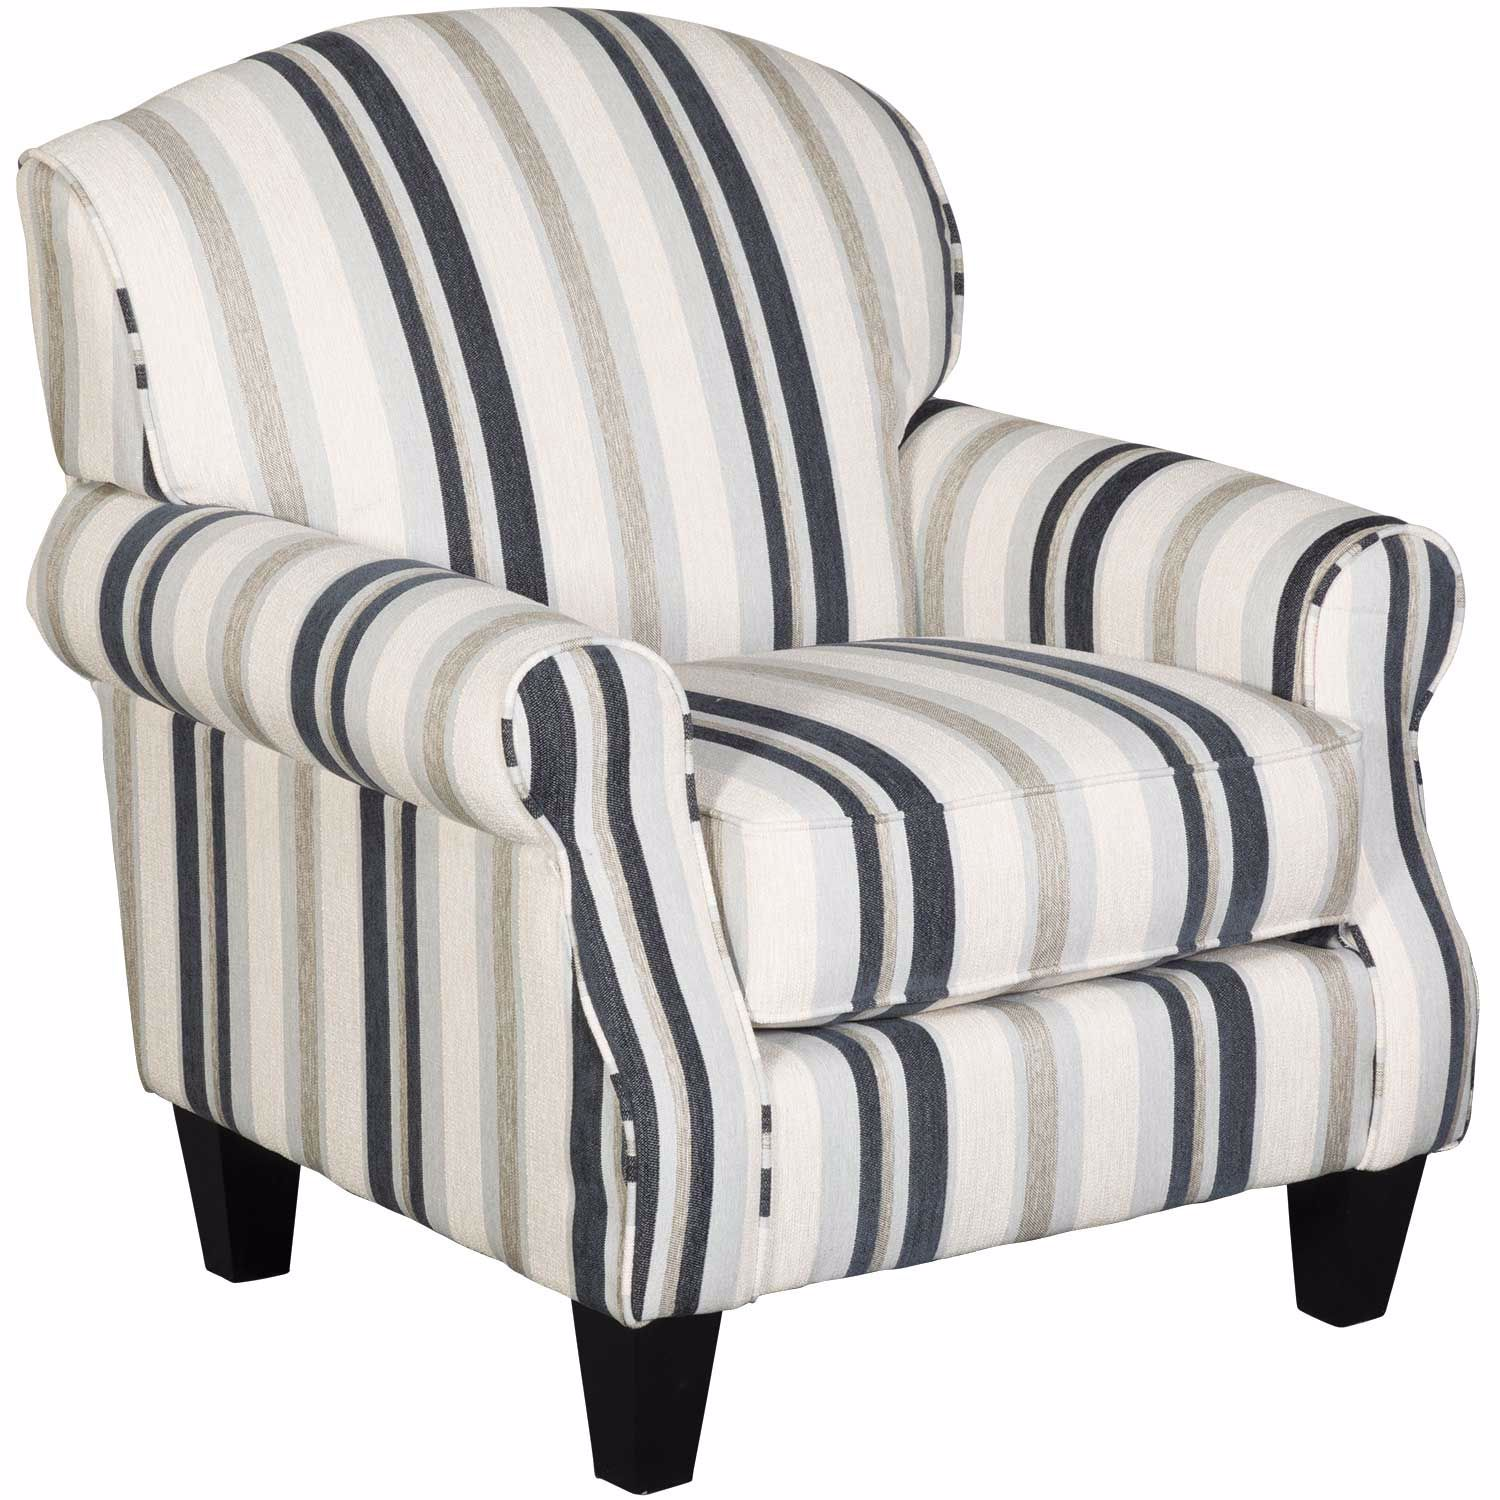 Where To Get Nice Accent Chairs.Hamptons Cobalt Stripe Accent Chair